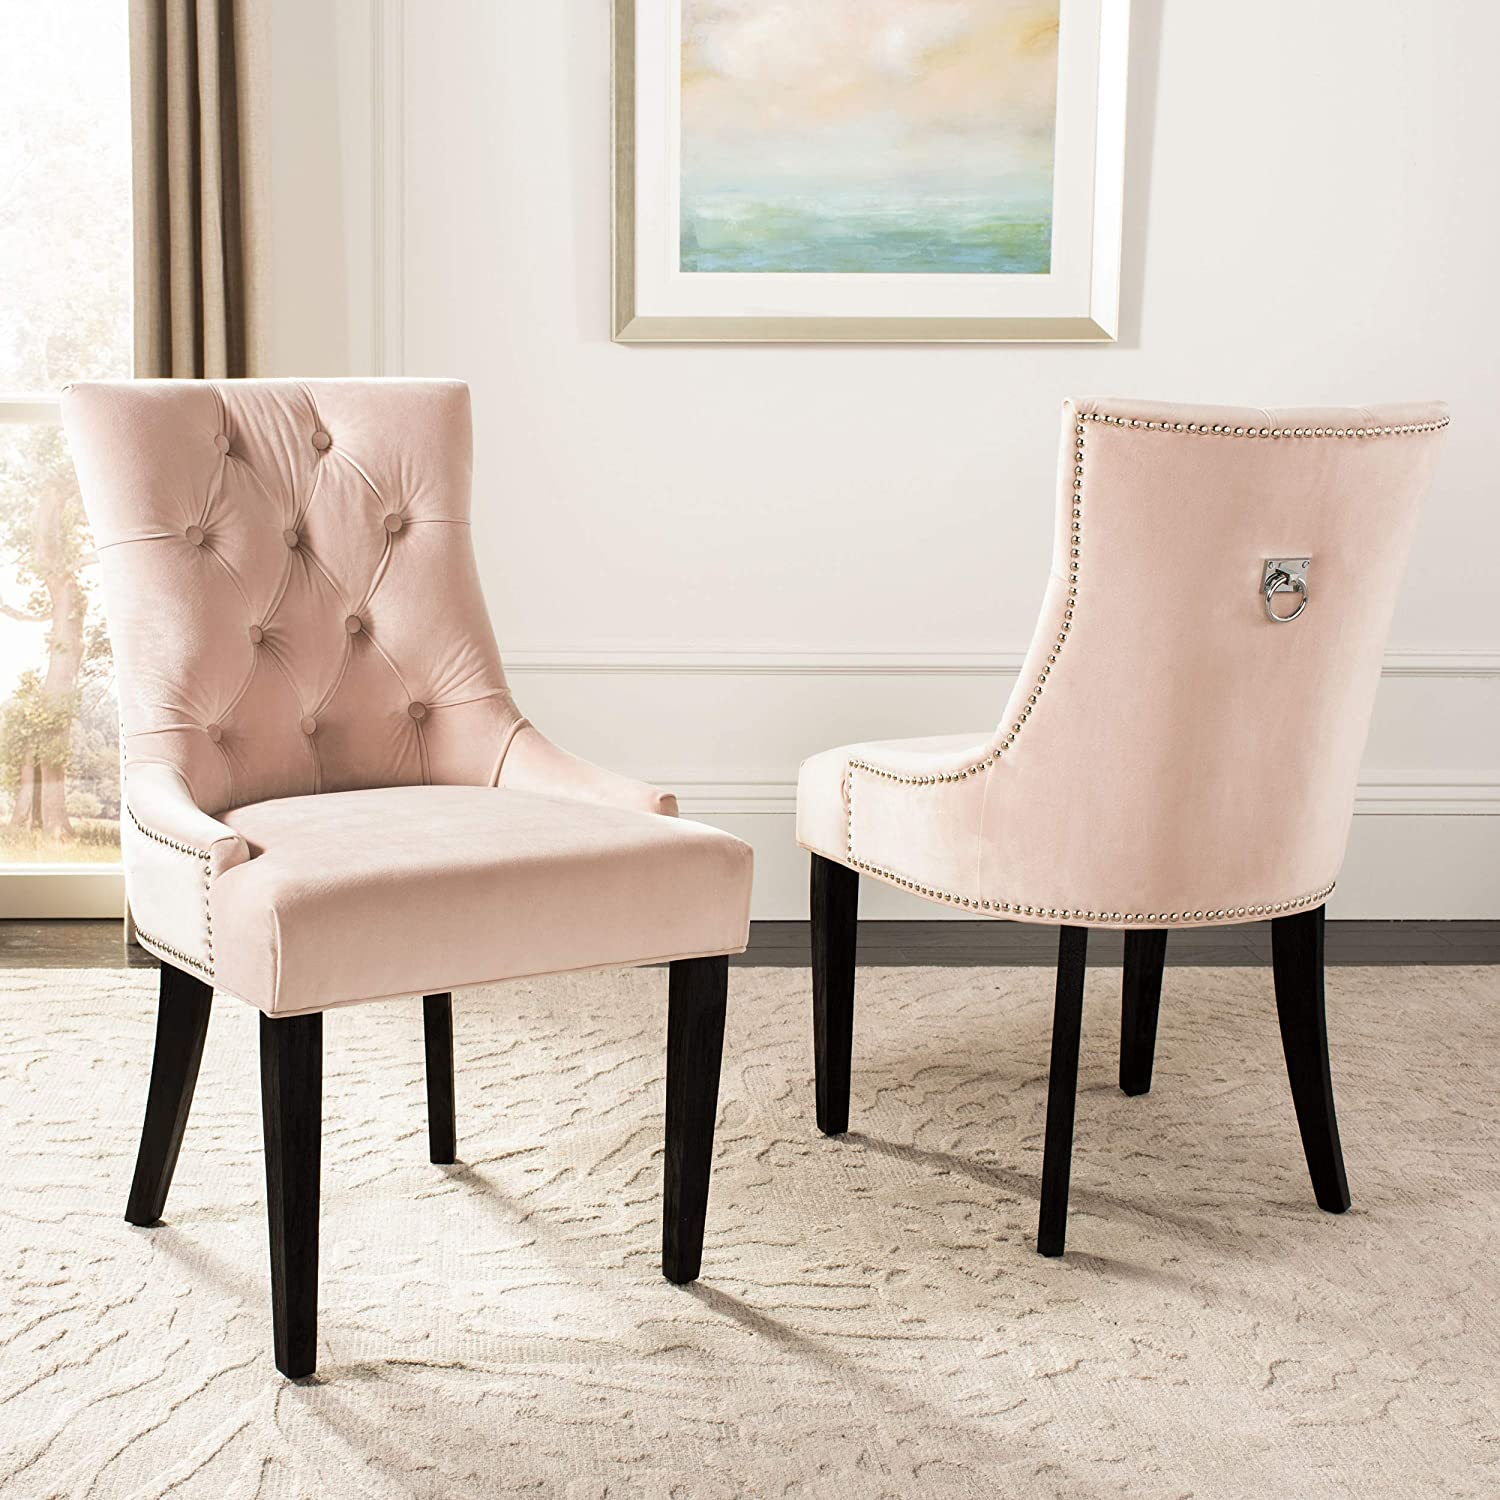 "Safavieh Home Collection Harlow 19"" Blush Pink and Espresso Tufted Ring (Set of 2) Dining Chair,"